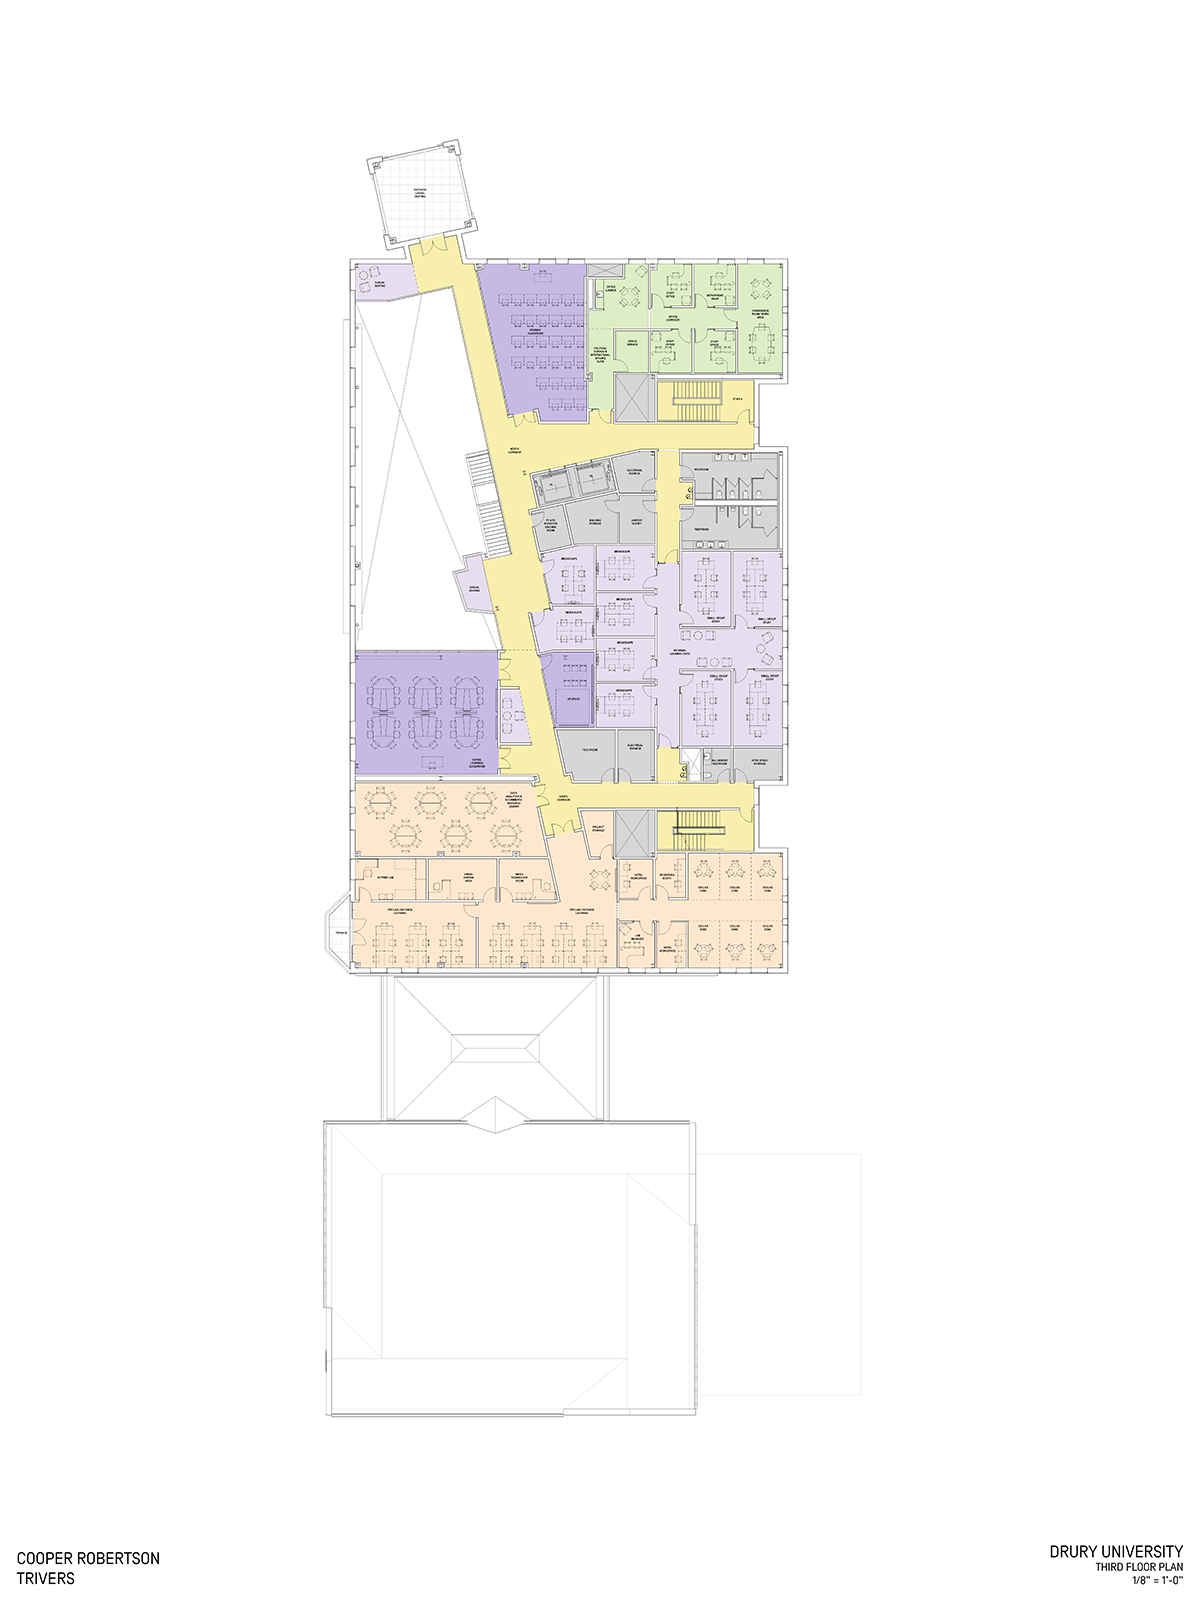 """Third floor plan for the C.H. """"Chub"""" O'Reilly Enterprise Center and Breech School of Business Administration."""